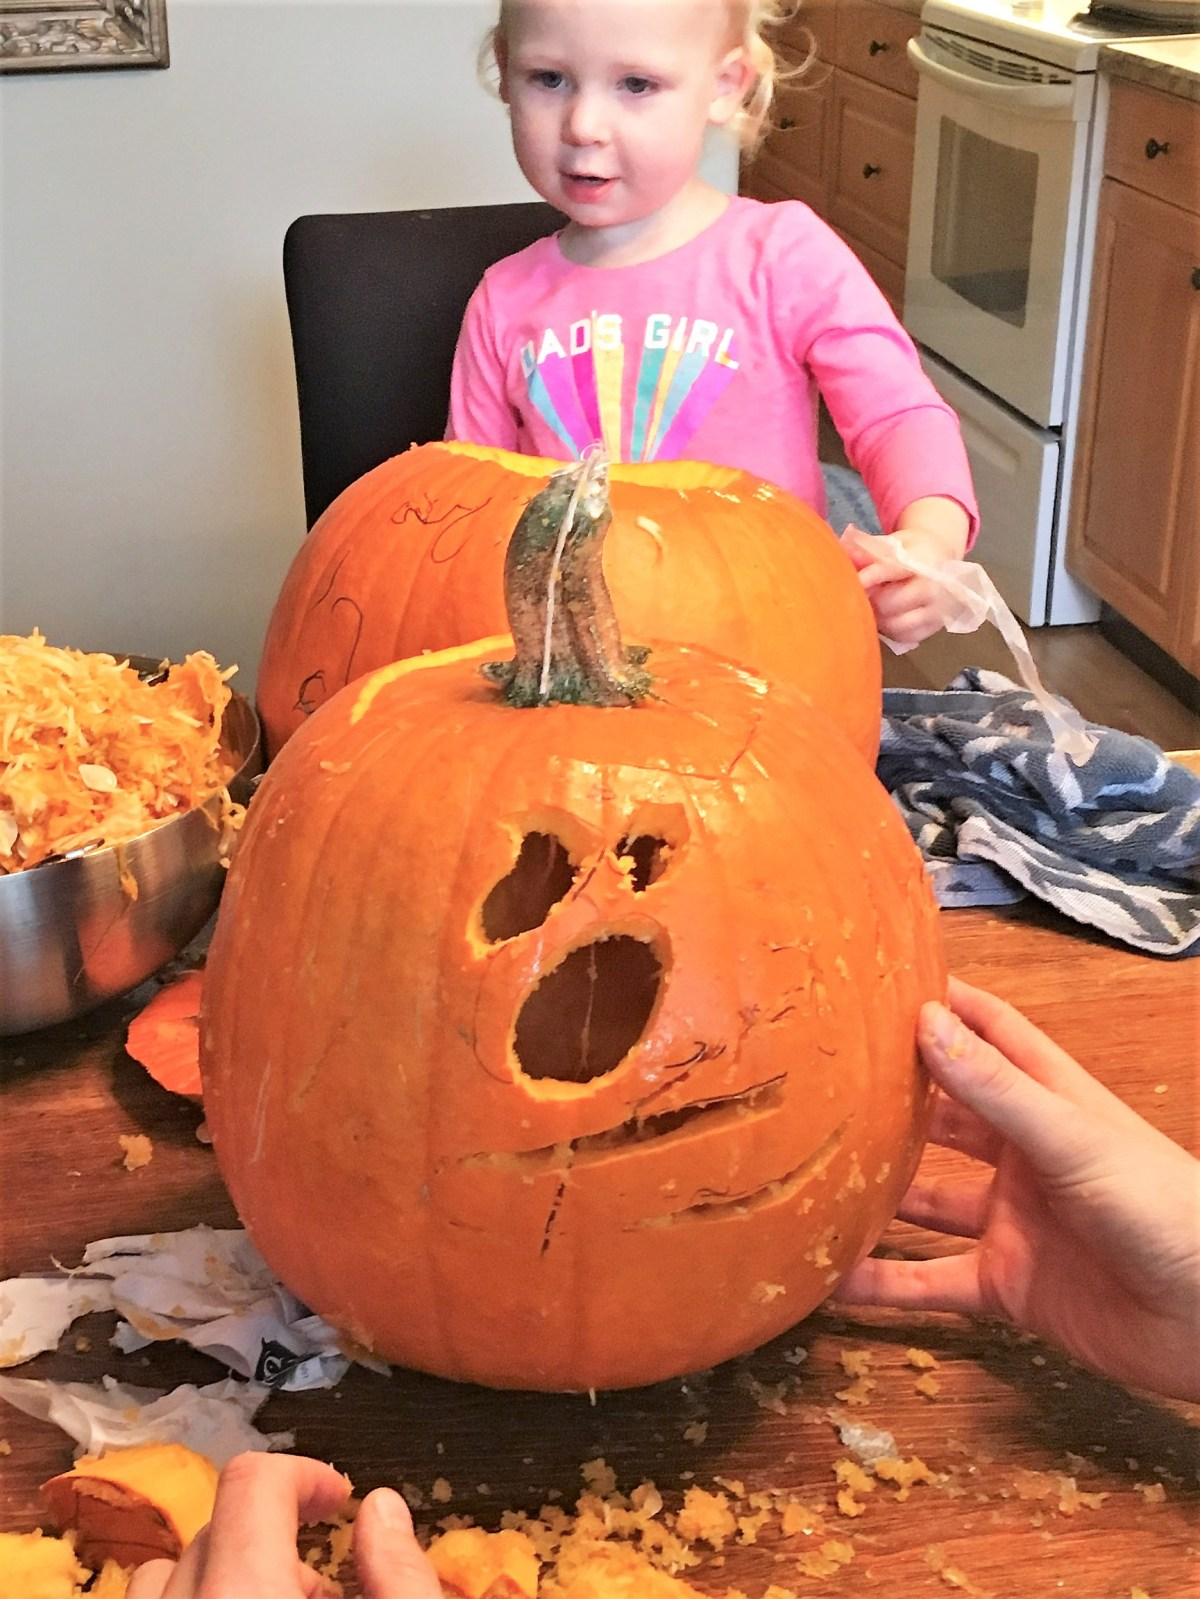 Halloween Traditions with the Kiddos - scribble face